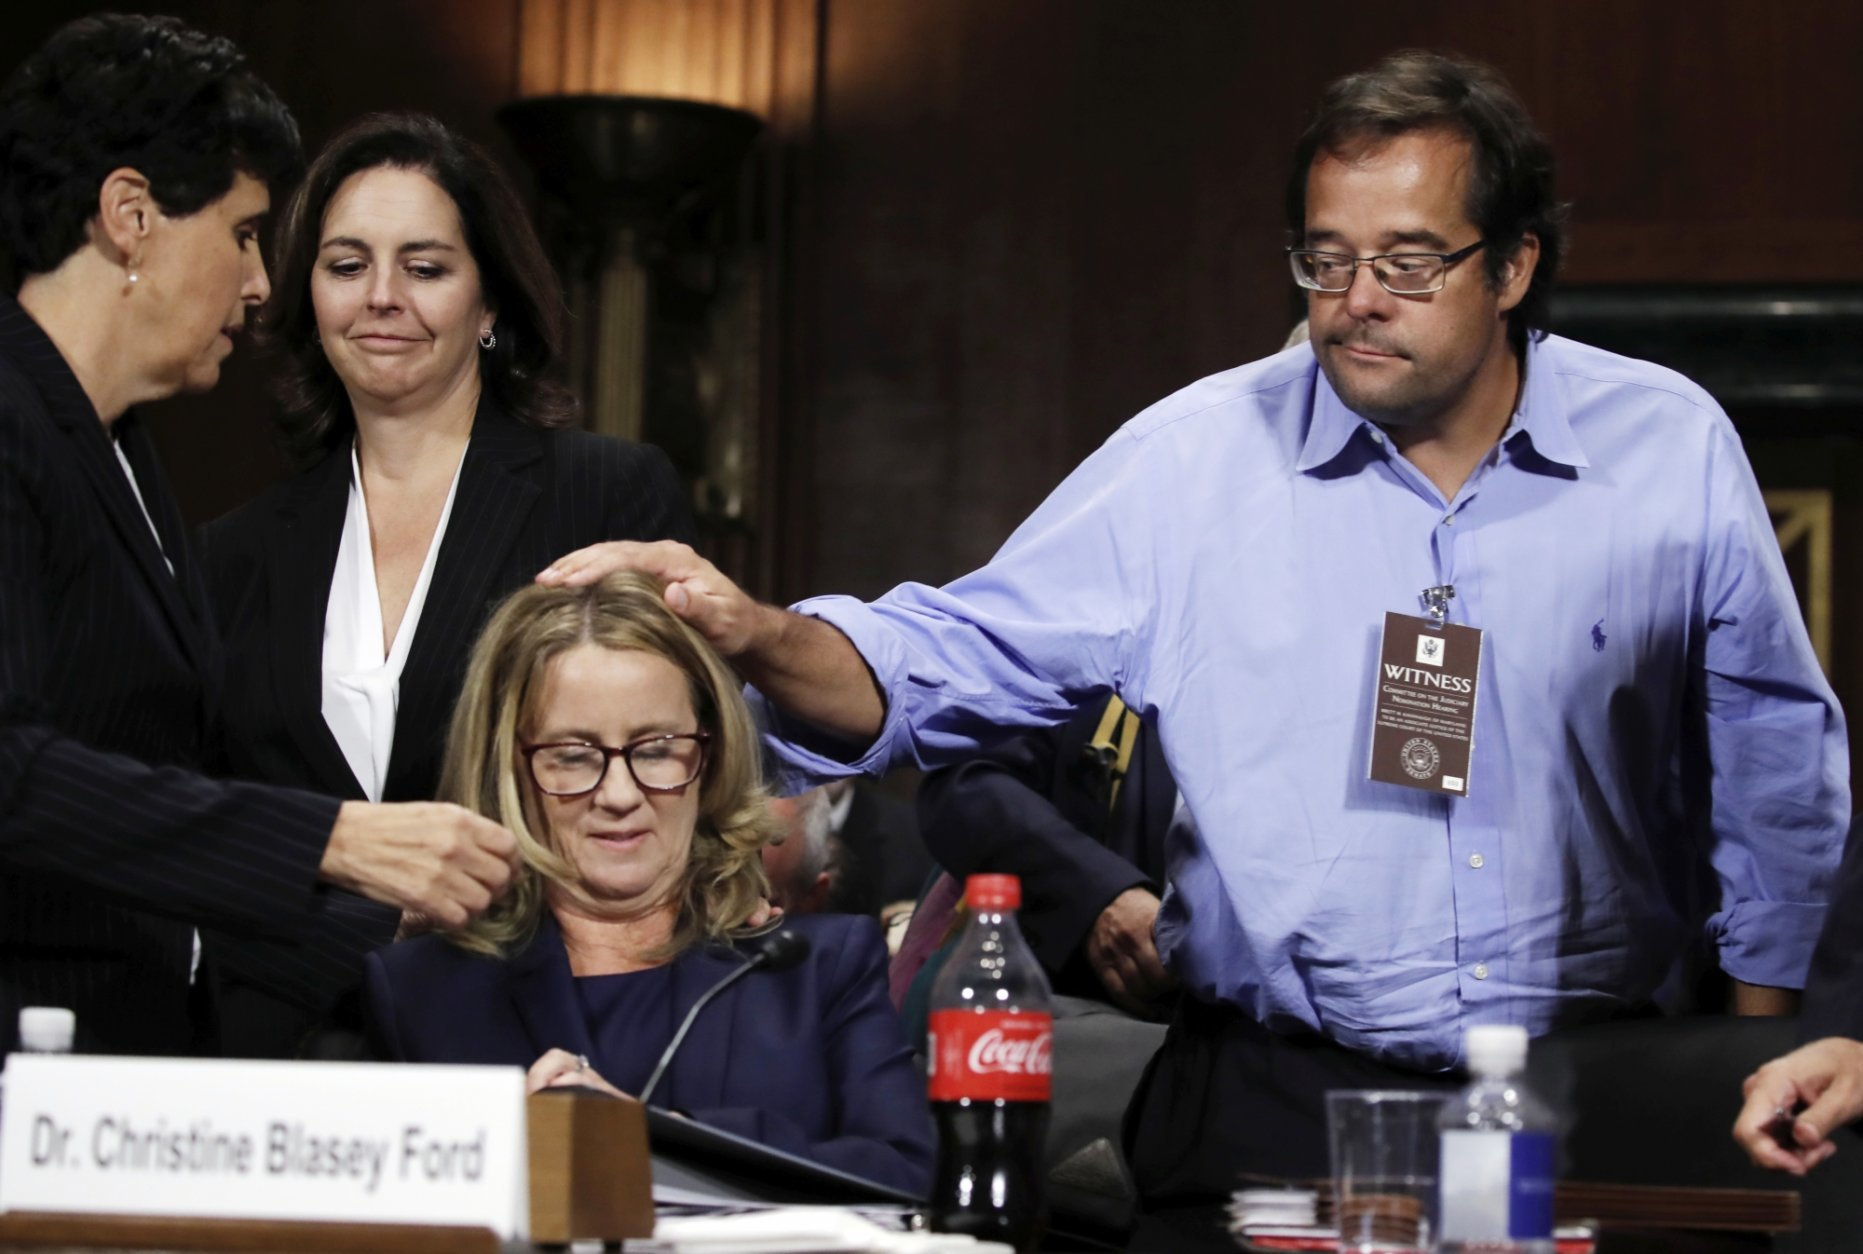 Christine Blasey Ford listens to her attorney Debra Katz, as Keith Kogner pats her on the head at the end of a hearing before the Senate Judiciary Committee on Capitol Hill Thursday, Sept. 27, 2018 in Washington. (Jim Bourg/Pool Photo via AP)